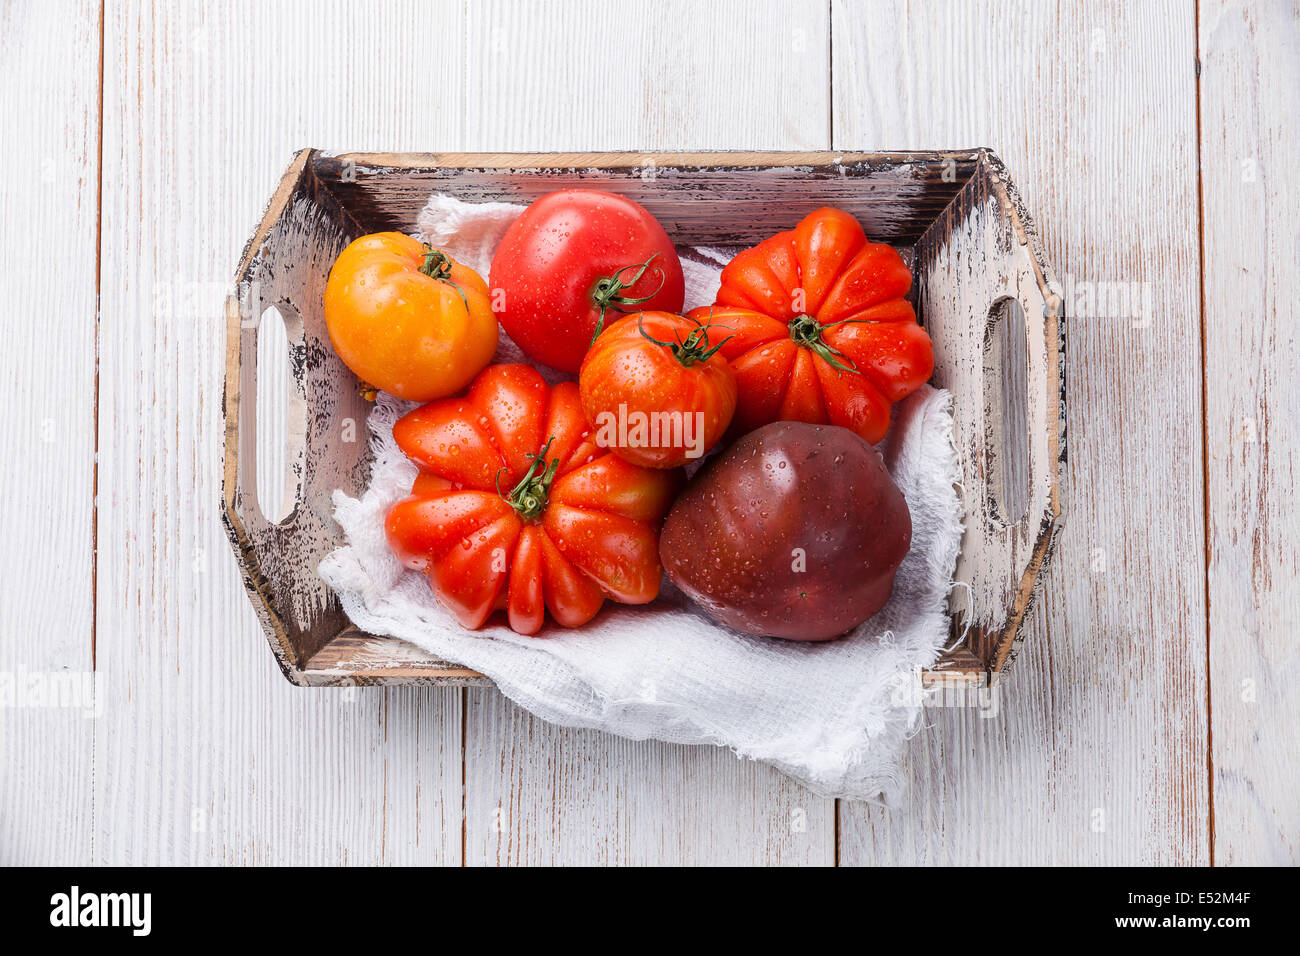 Ripe fresh colorful tomatoes in wooden box on white wooden background - Stock Image